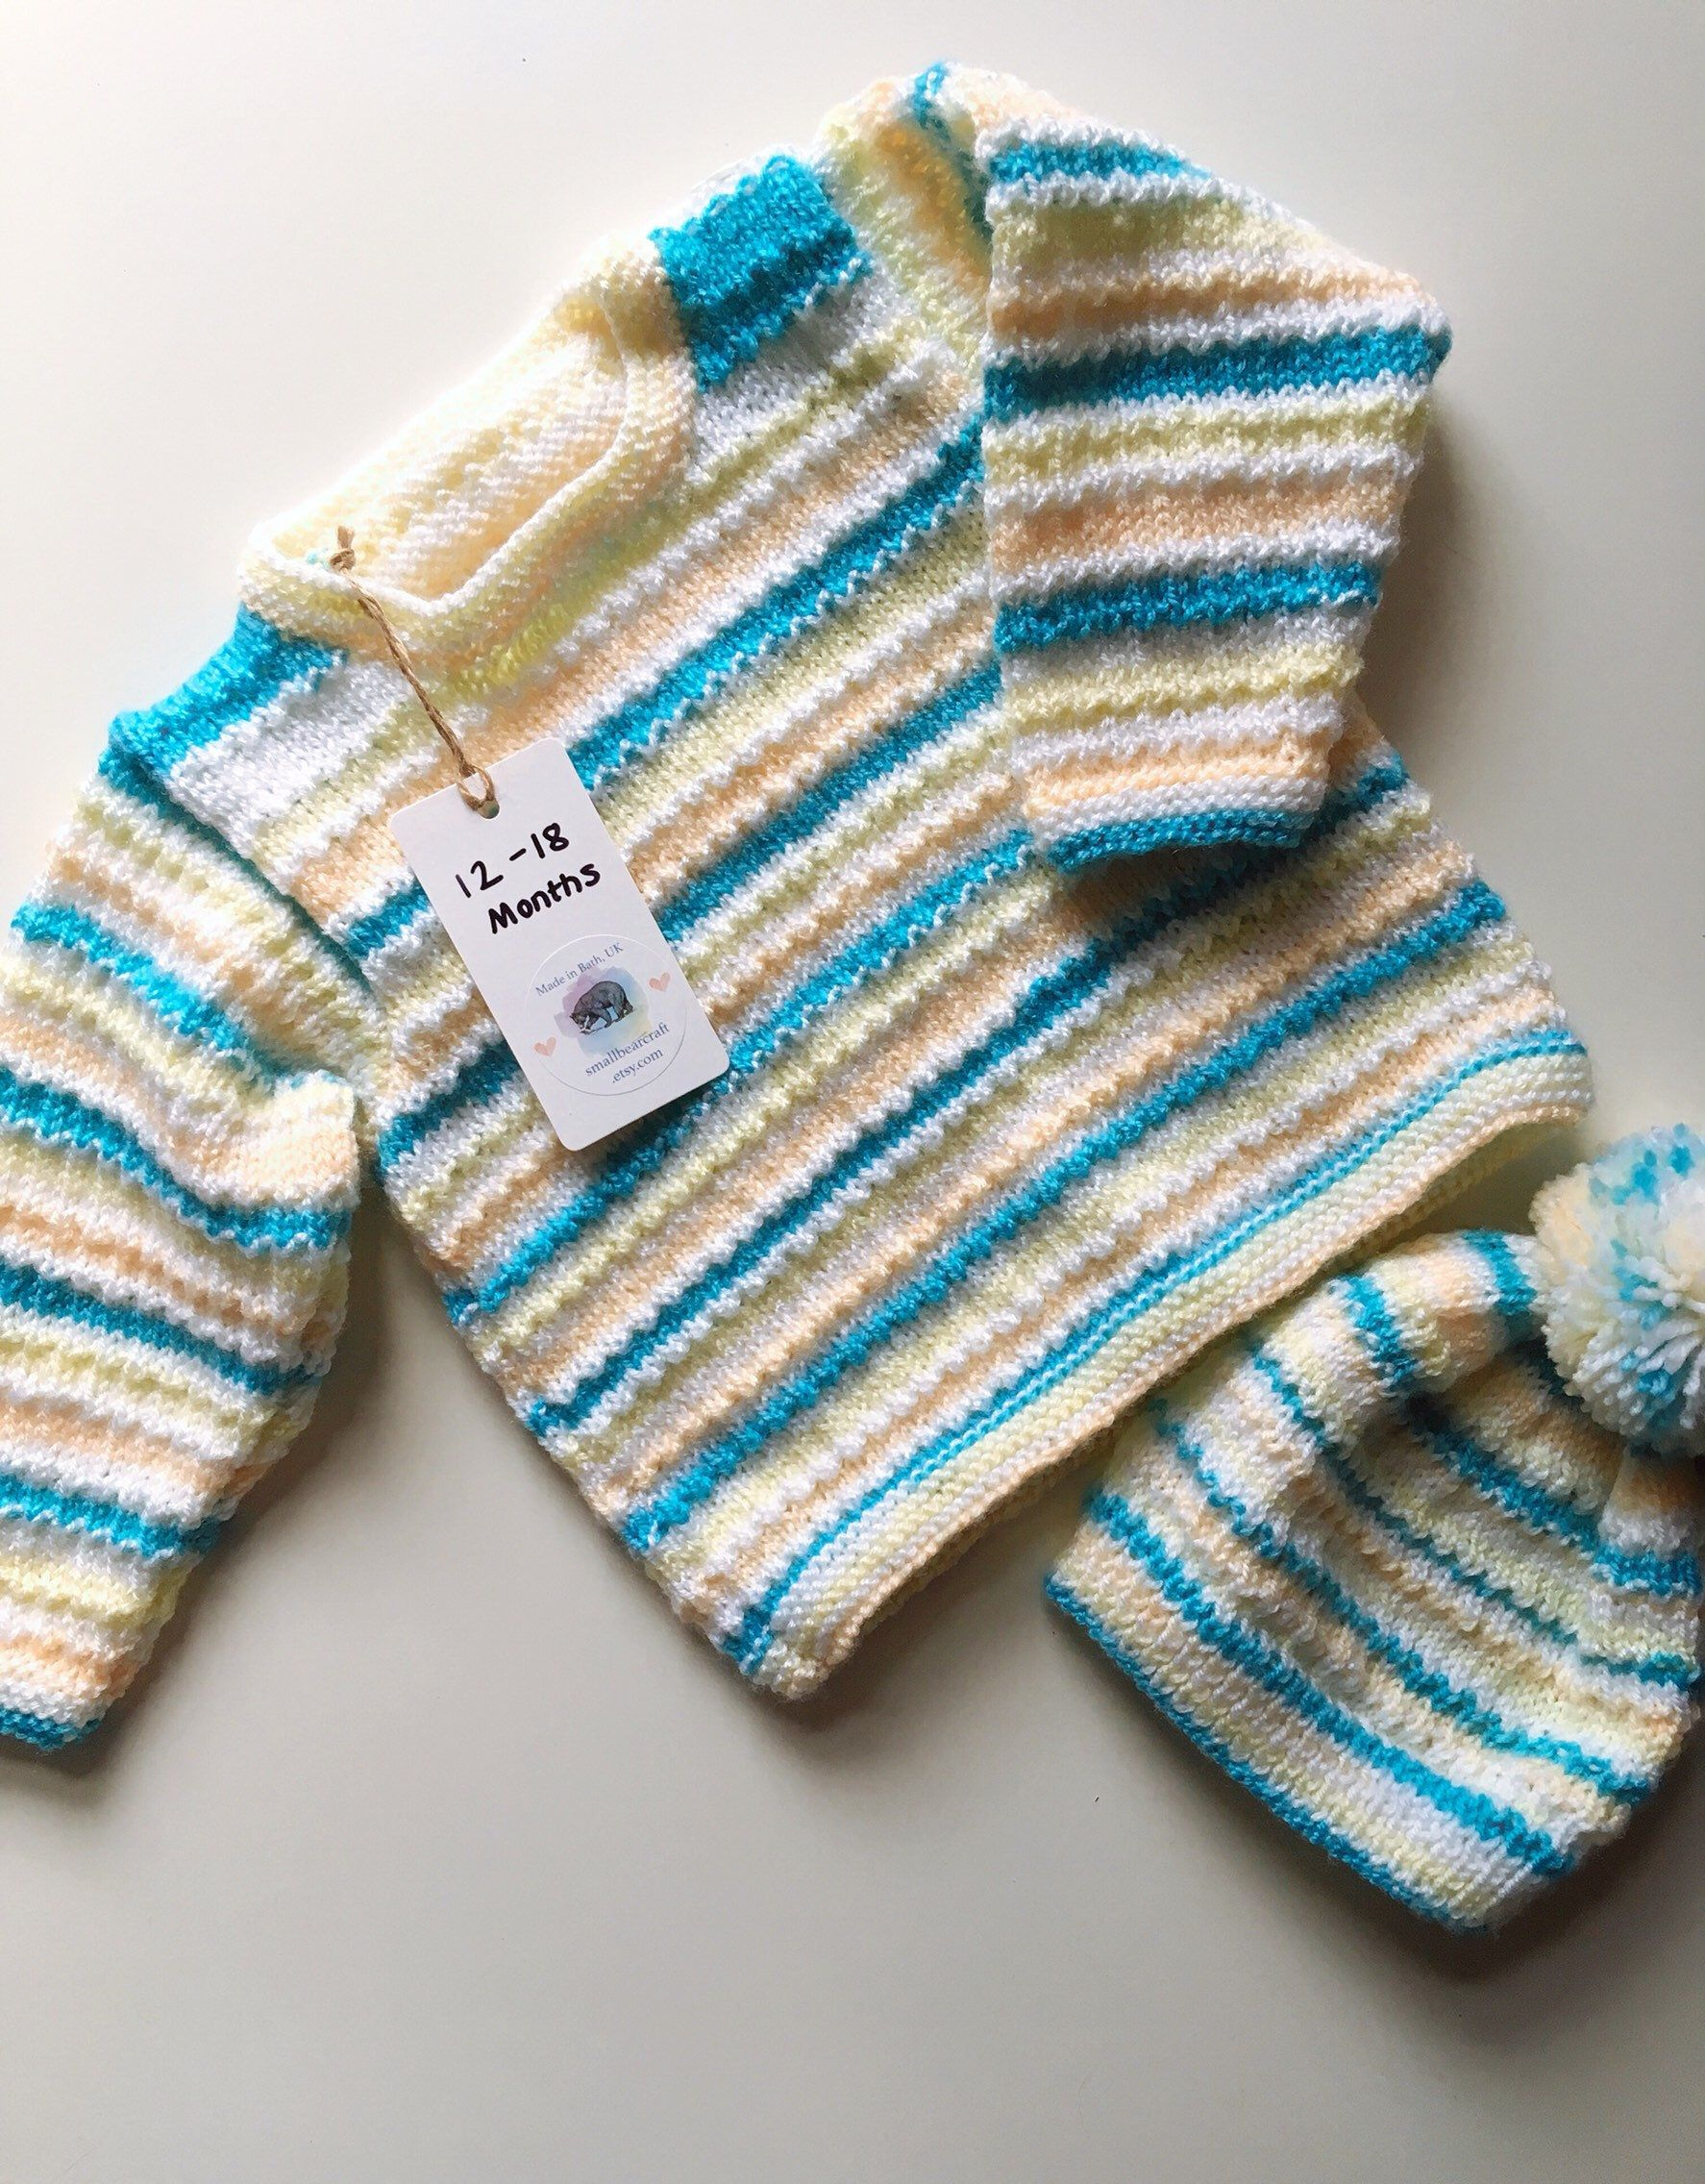 Lavendar Aqua and Blue Sweater Babies Hand knit jumper Age 6 to 12 monthes.